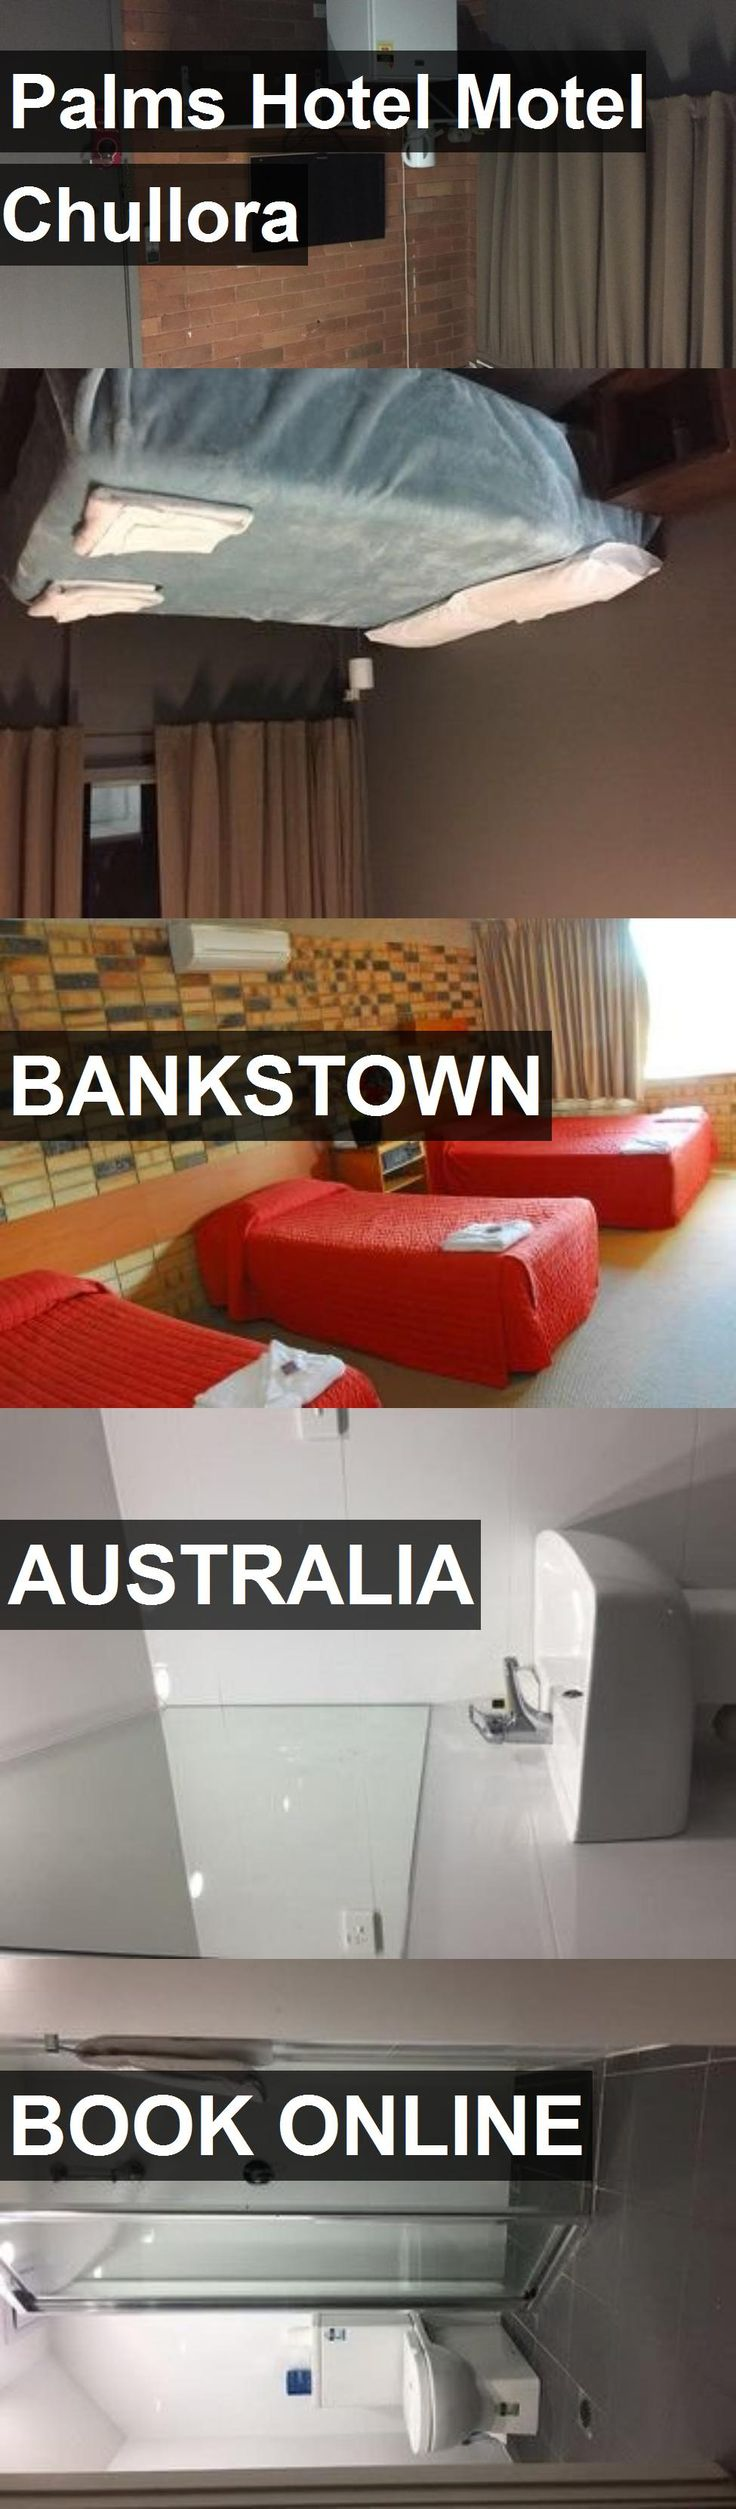 Hotel Palms Hotel Motel Chullora in Bankstown, Australia. For more information, photos, reviews and best prices please follow the link. #Australia #Bankstown #PalmsHotelMotelChullora #hotel #travel #vacation